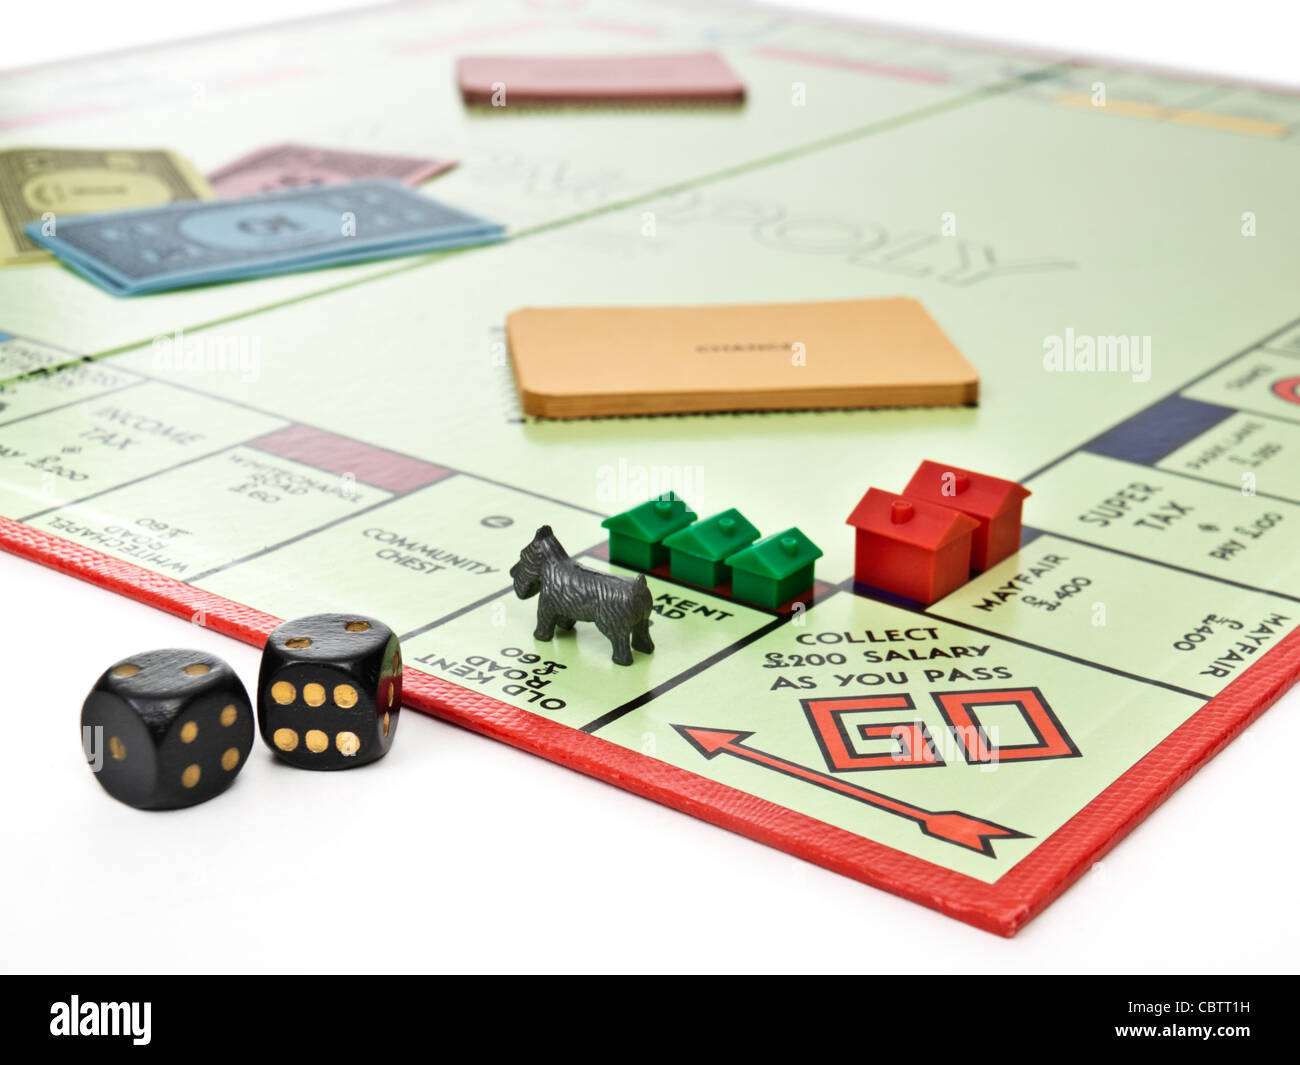 Monopoly property trading board game - Stock Image